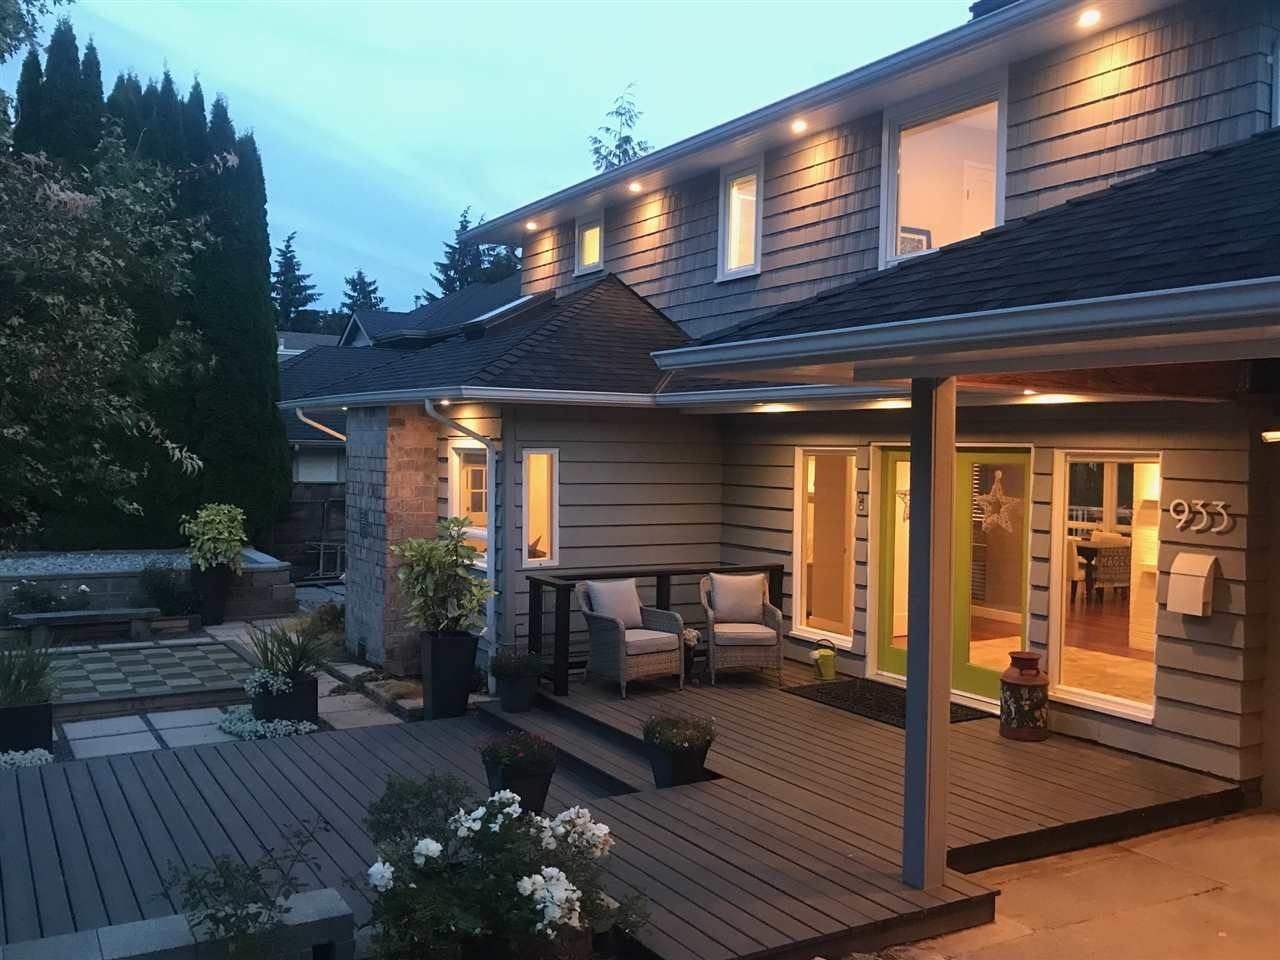 Main Photo: 933 MELBOURNE AVENUE in North Vancouver: Edgemont House for sale : MLS®# R2303309